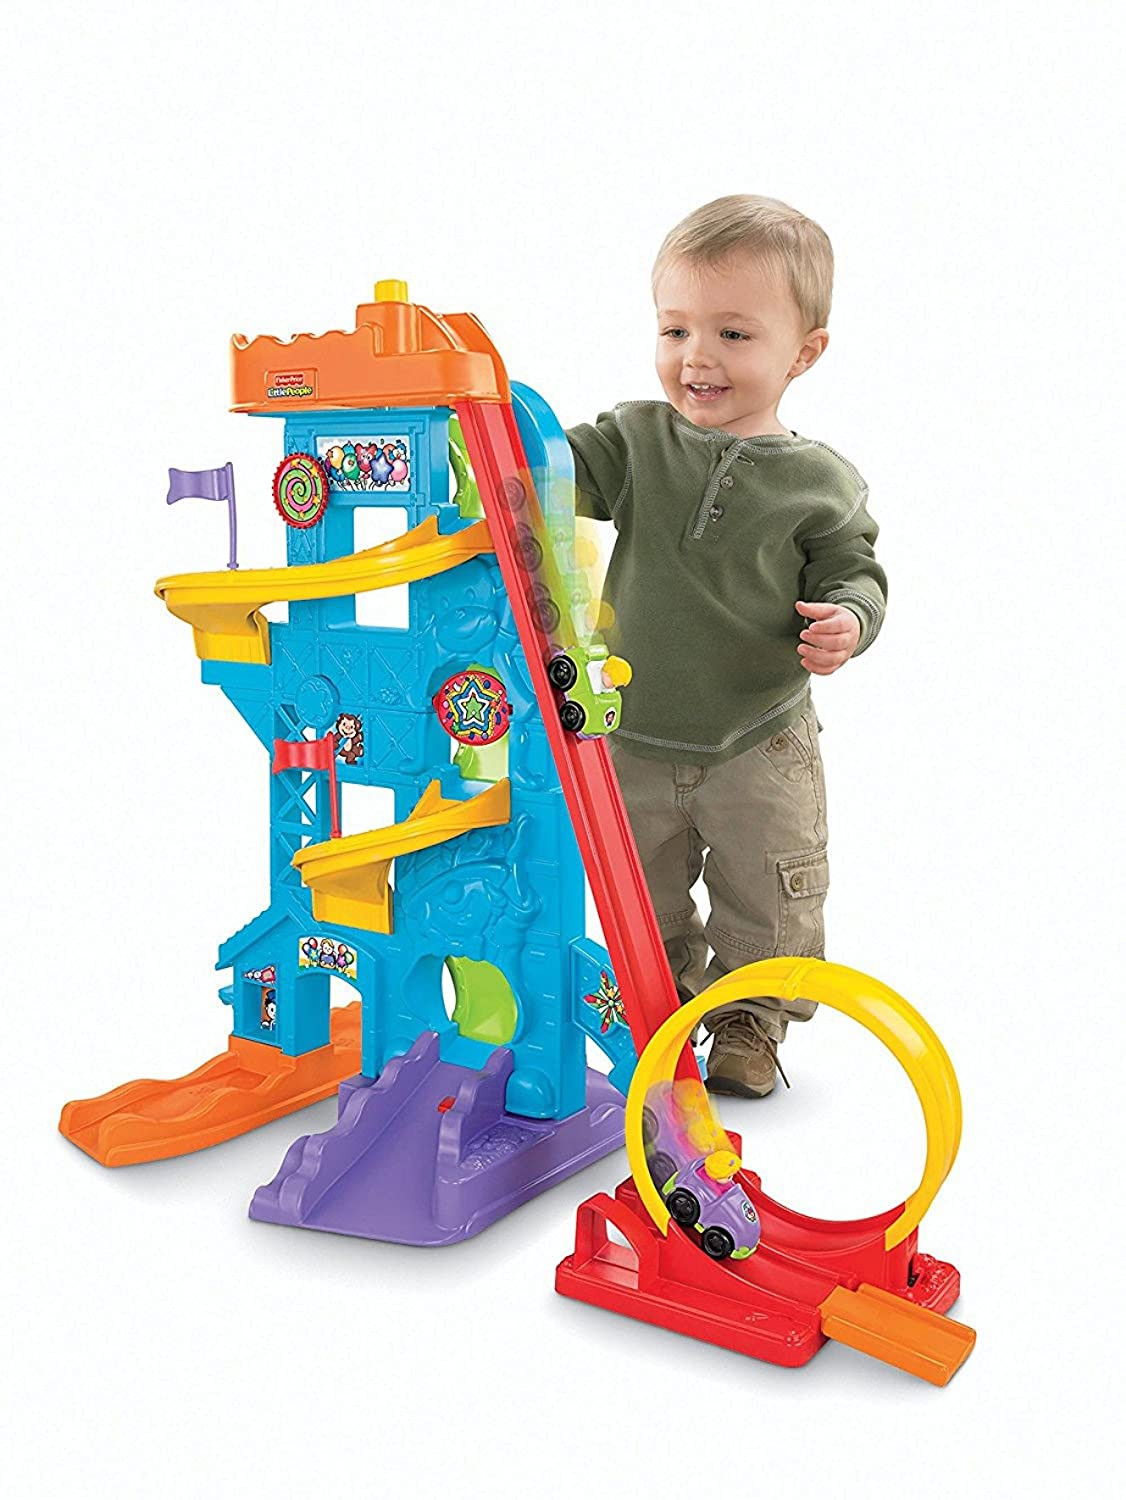 Gift Ideas For 2 Year Old Boys  Best Toys & Gift Ideas for 2 Year Old Boys Reviewed in 2018